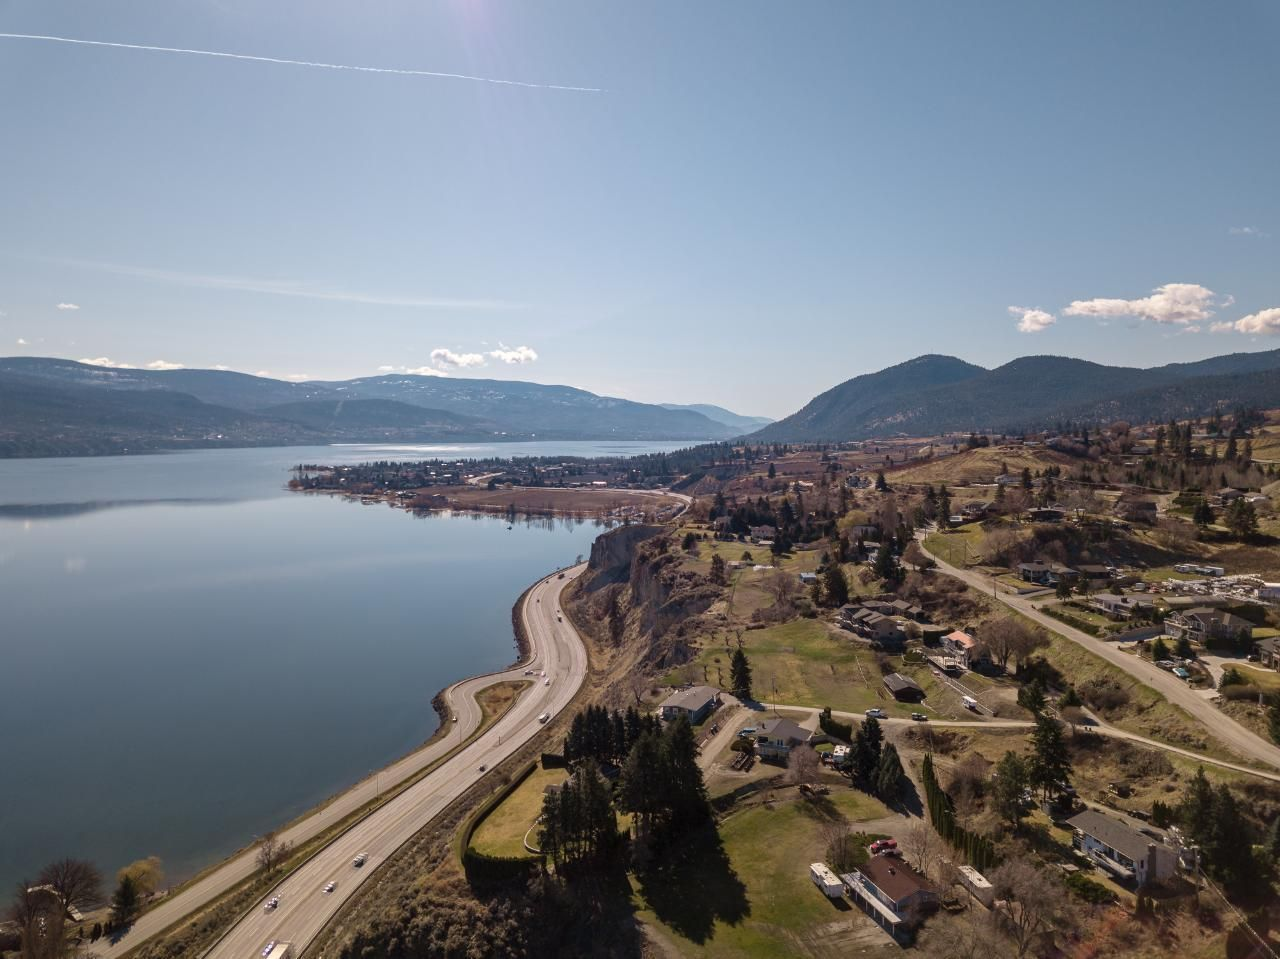 Main Photo: 5100 WILSON Road, in Summerland: House for sale : MLS®# 188483